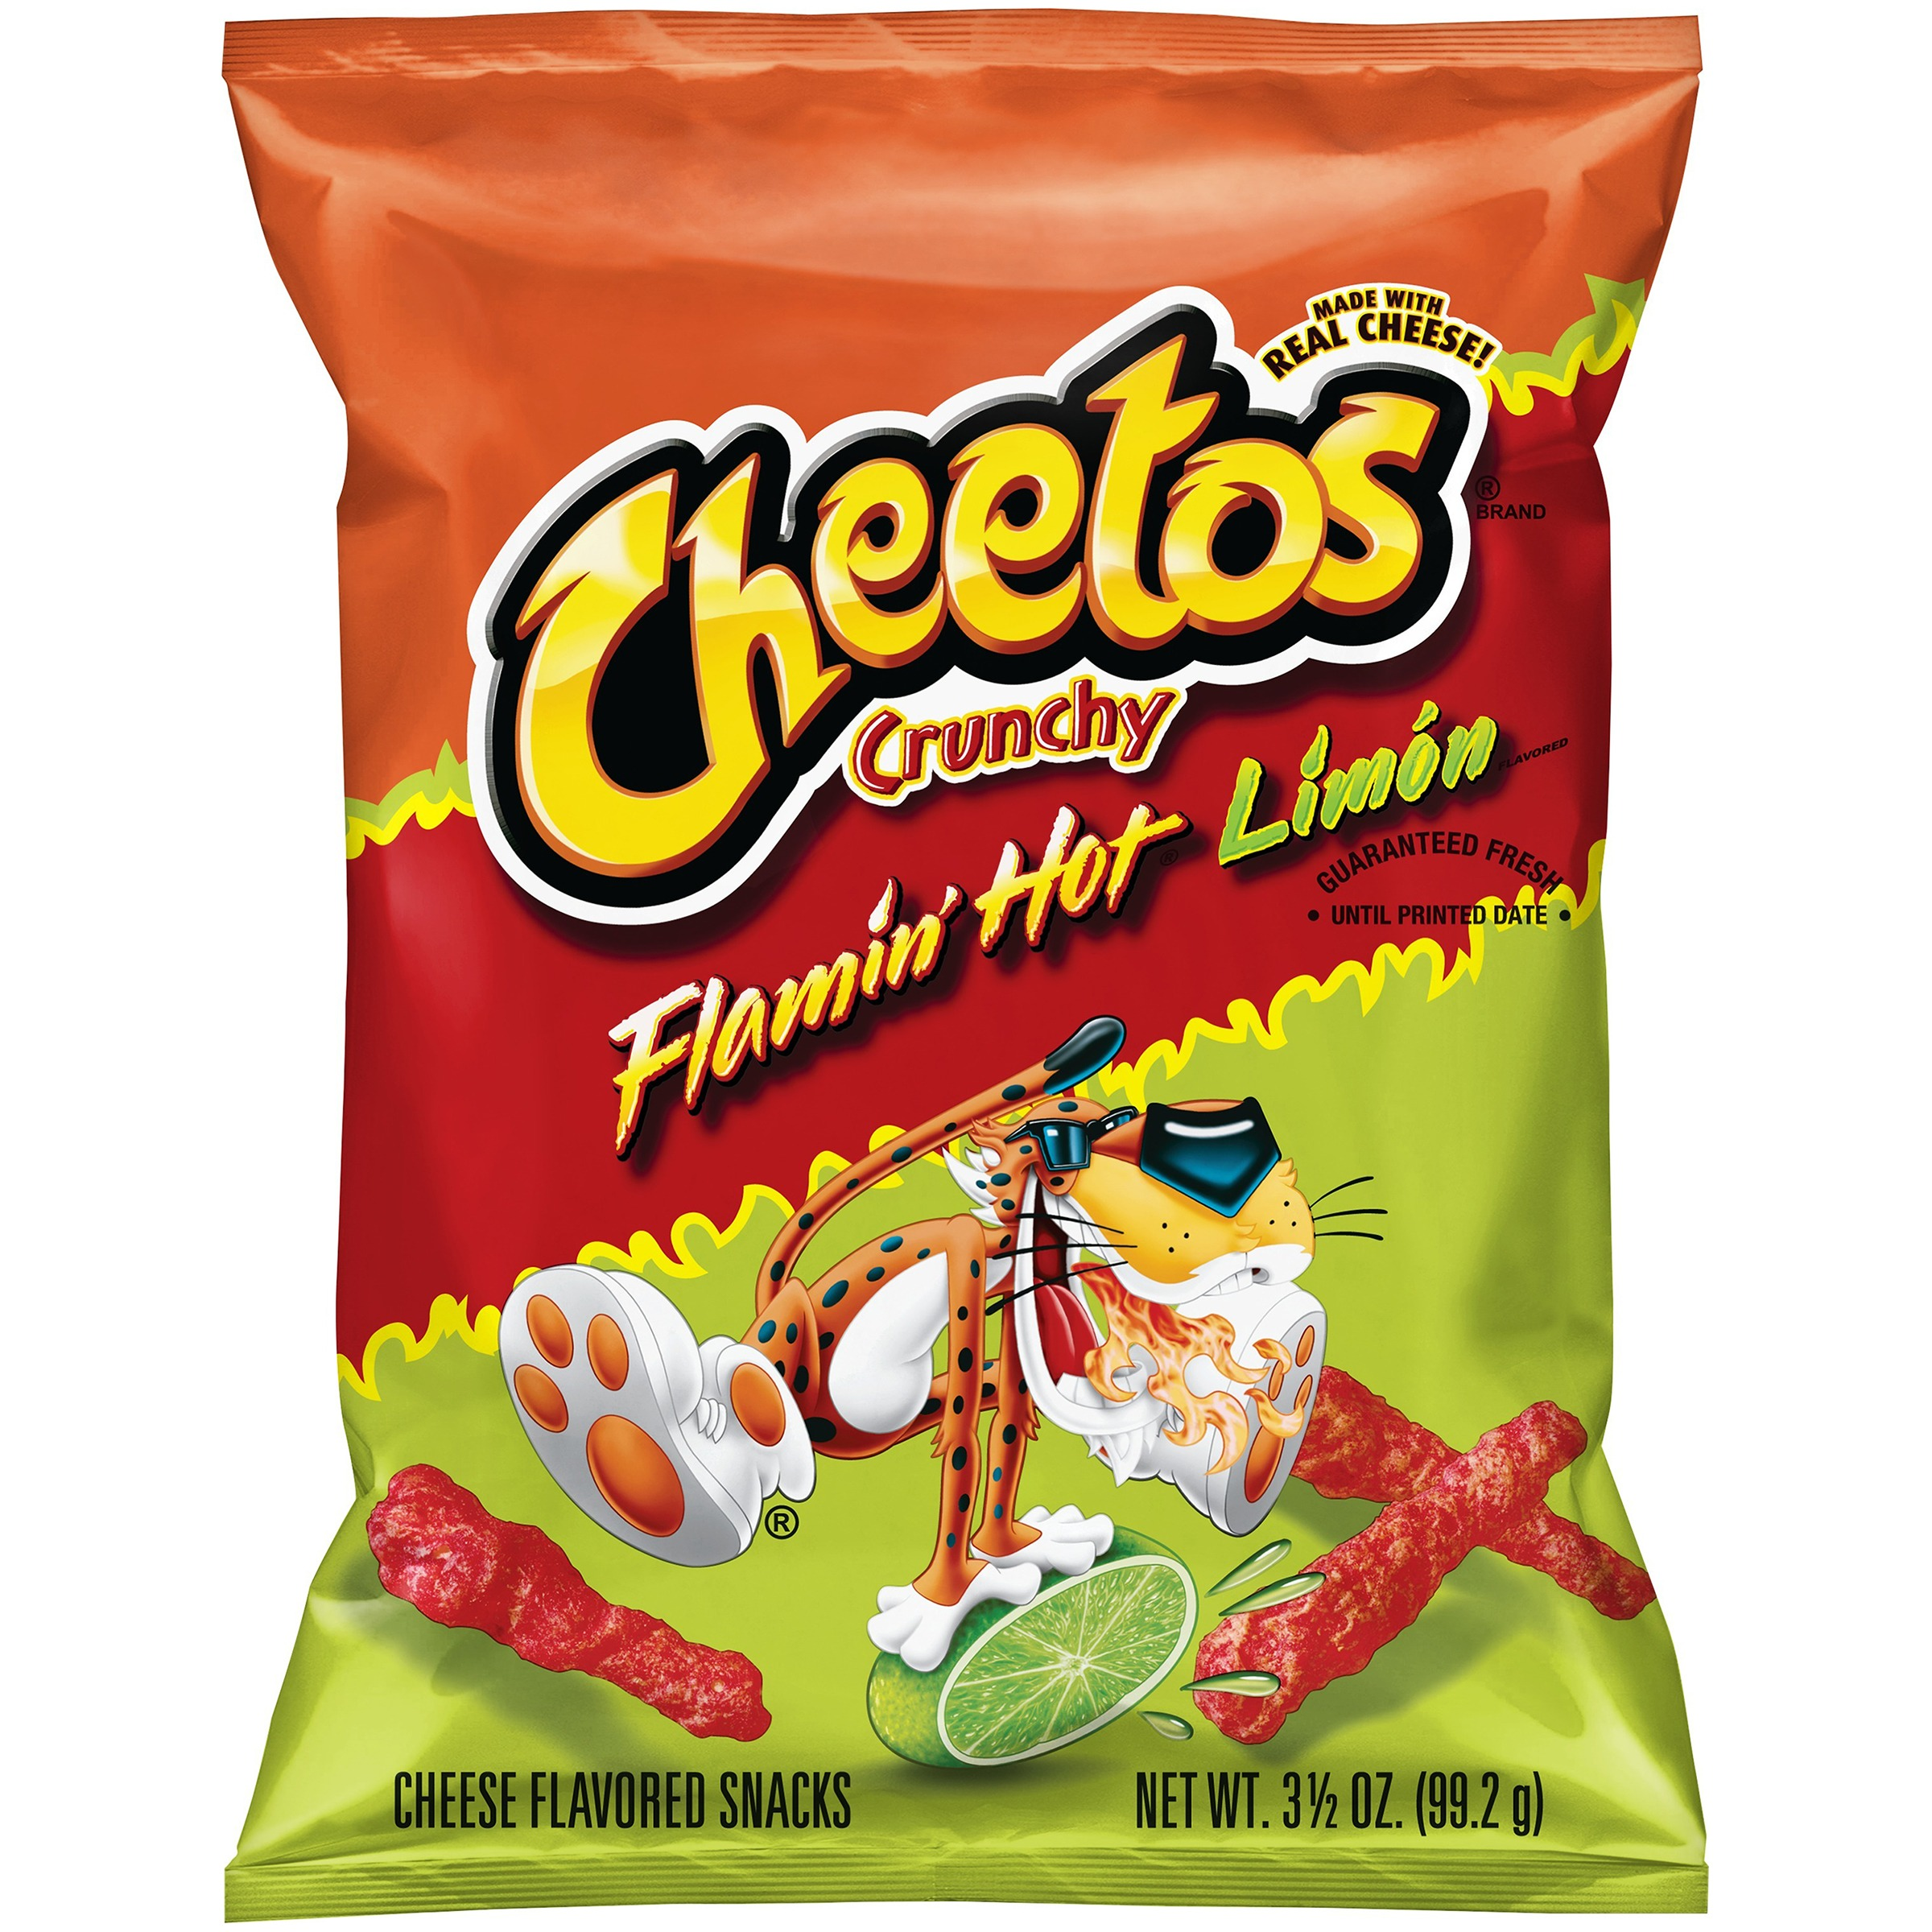 Cheetos Crunchy Flamin' Hot Limn Cheese Flavored Snacks 3.5 oz. Bag